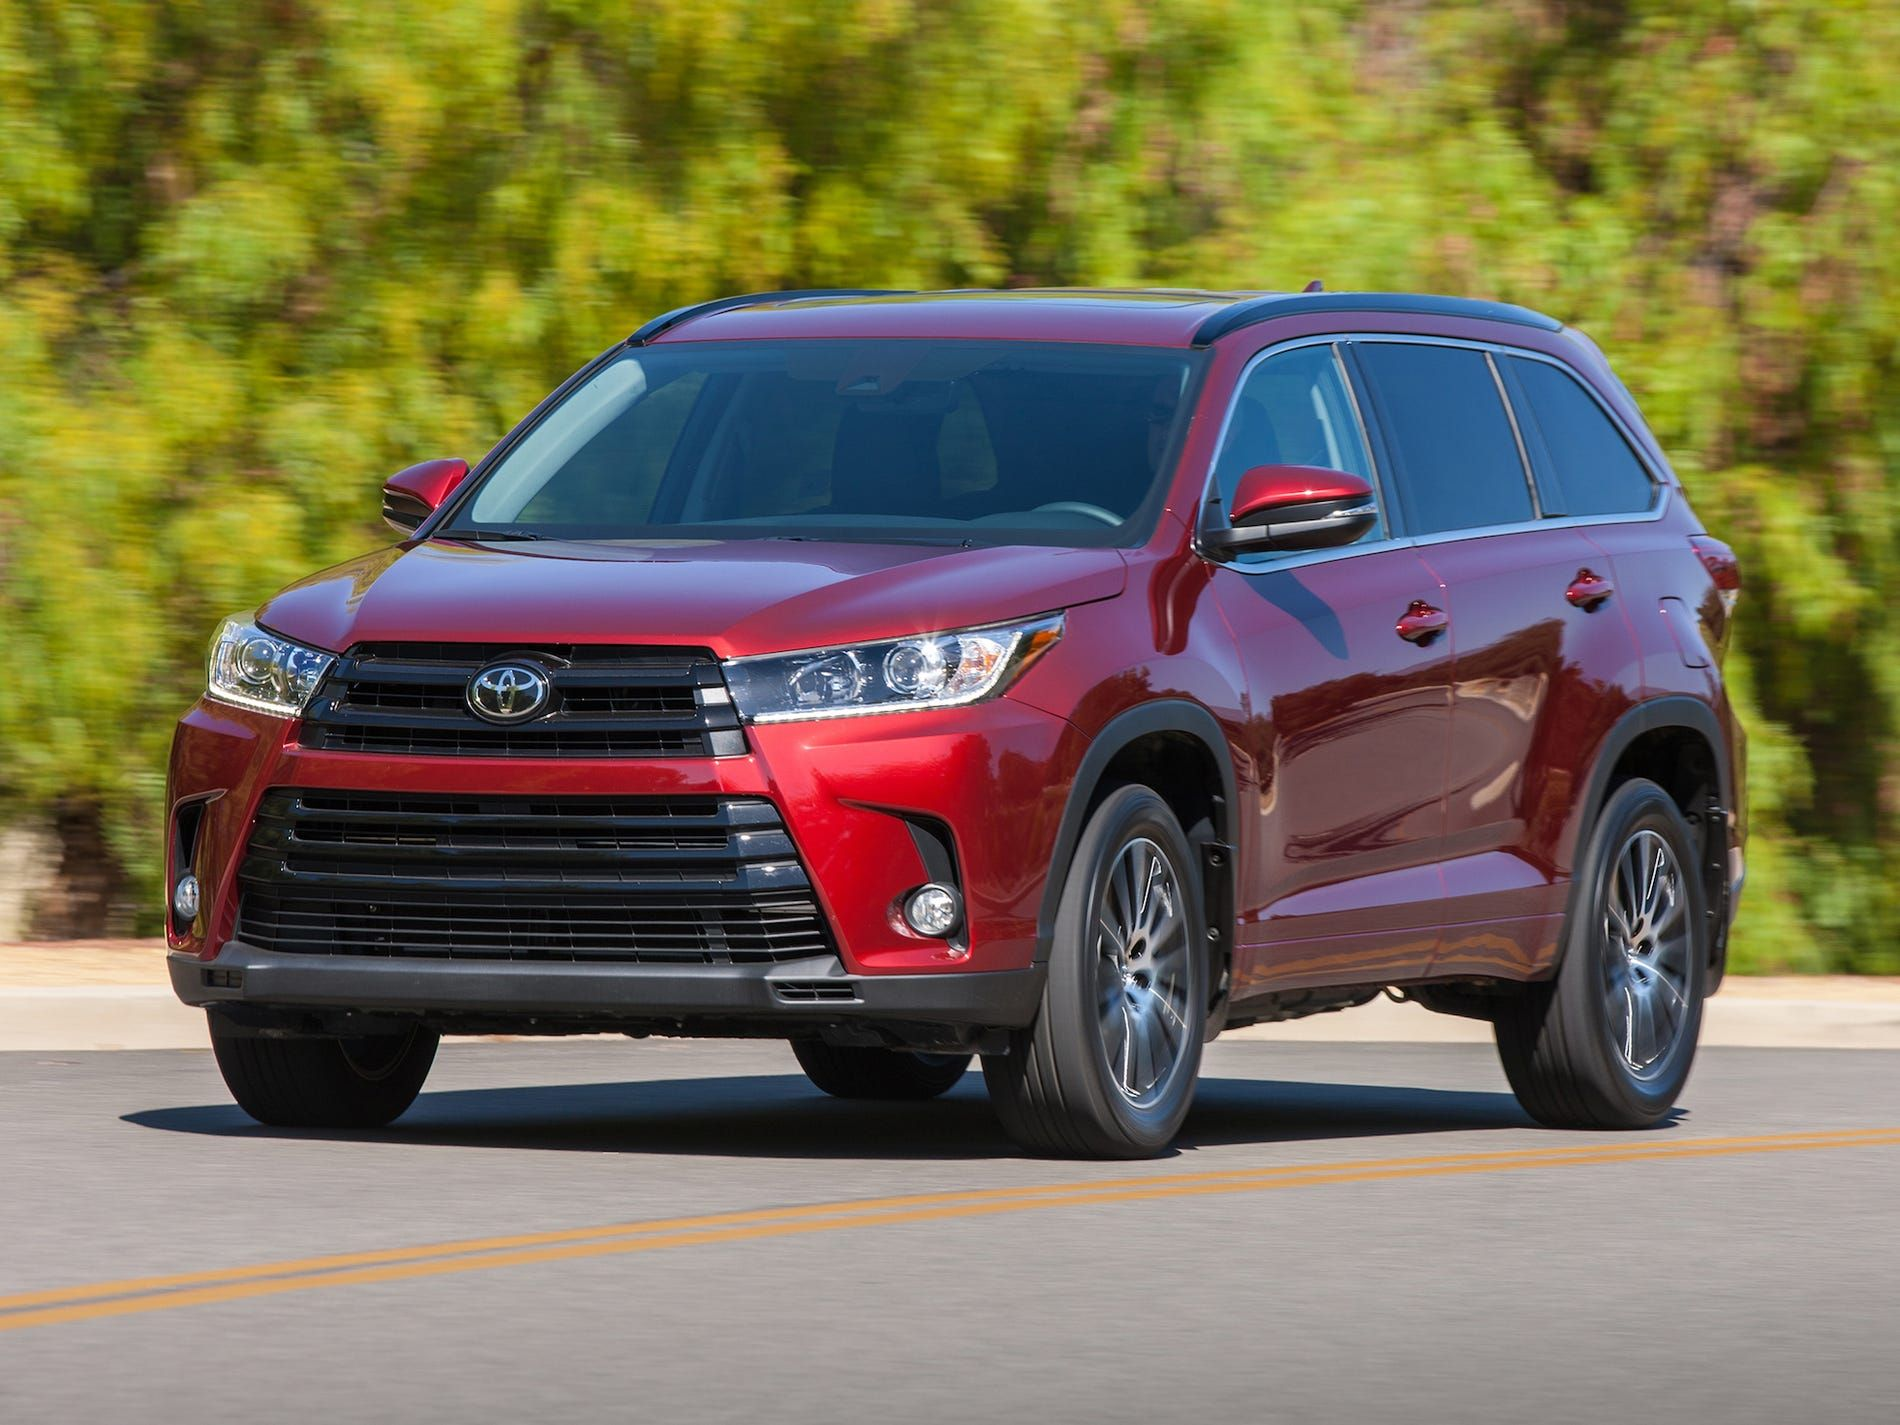 SUVs with the best resale value after 5 years, according